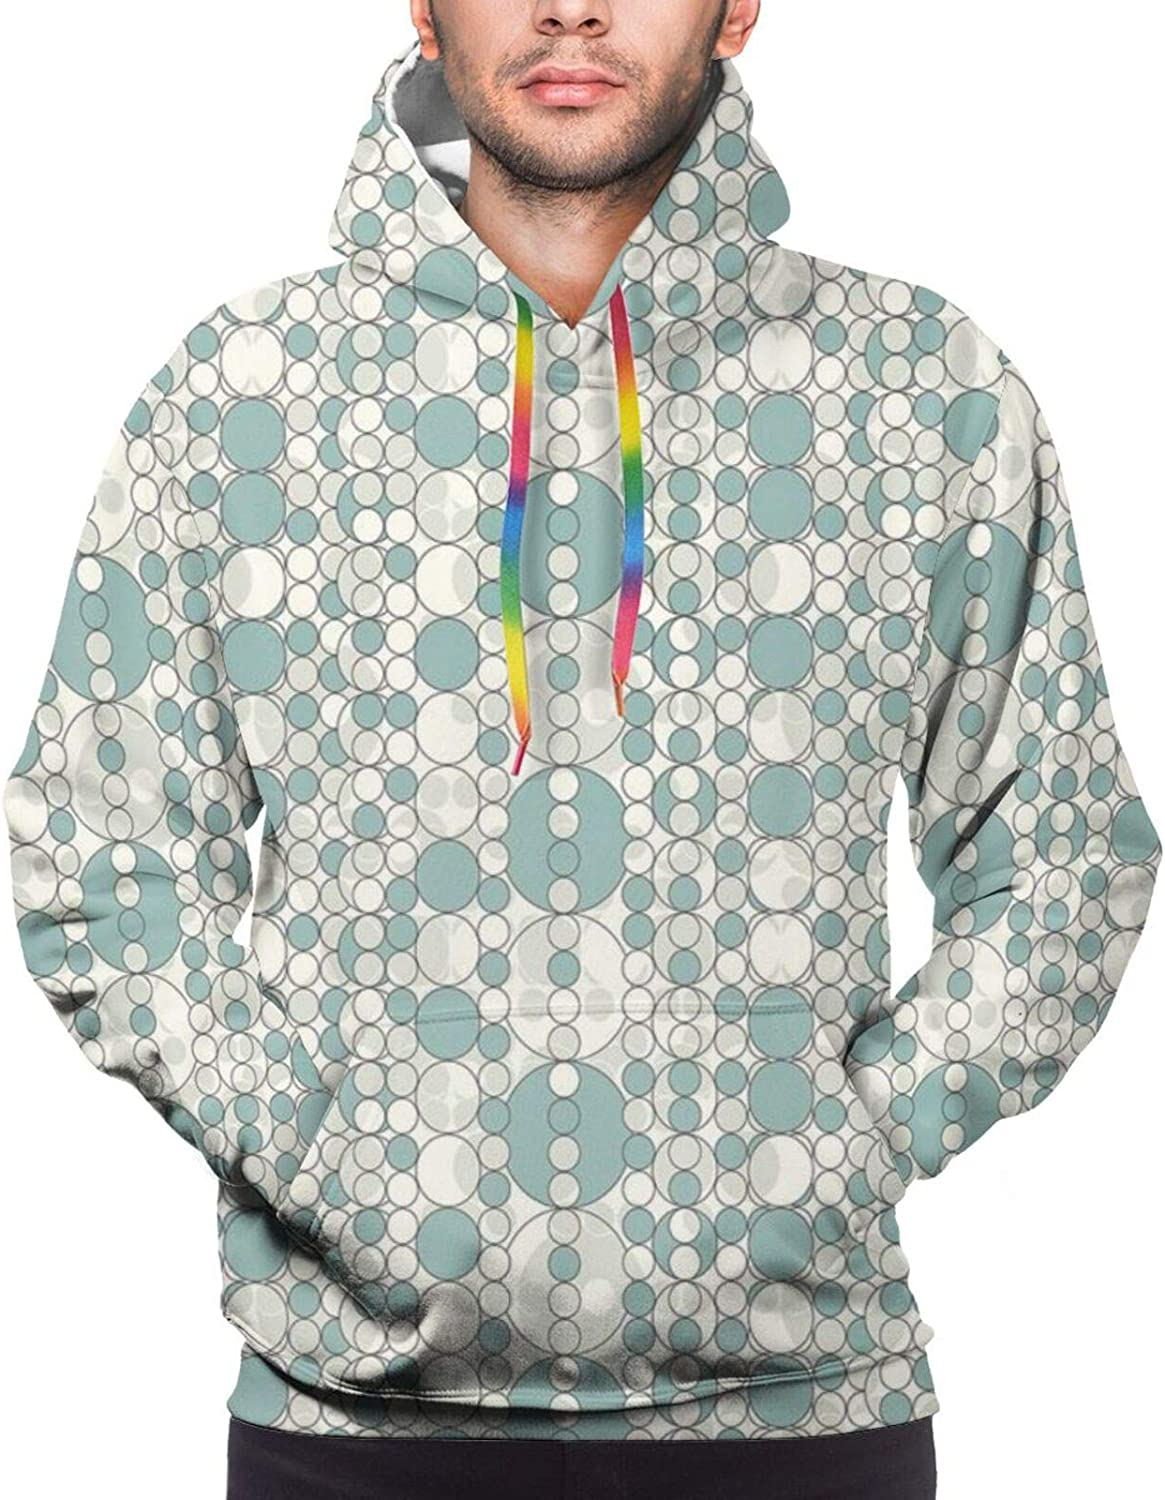 Men's Hoodies Sweatshirts,Abstract Circles Linked Round Geometric Forms in Soft Faded Tones Artwork,Small